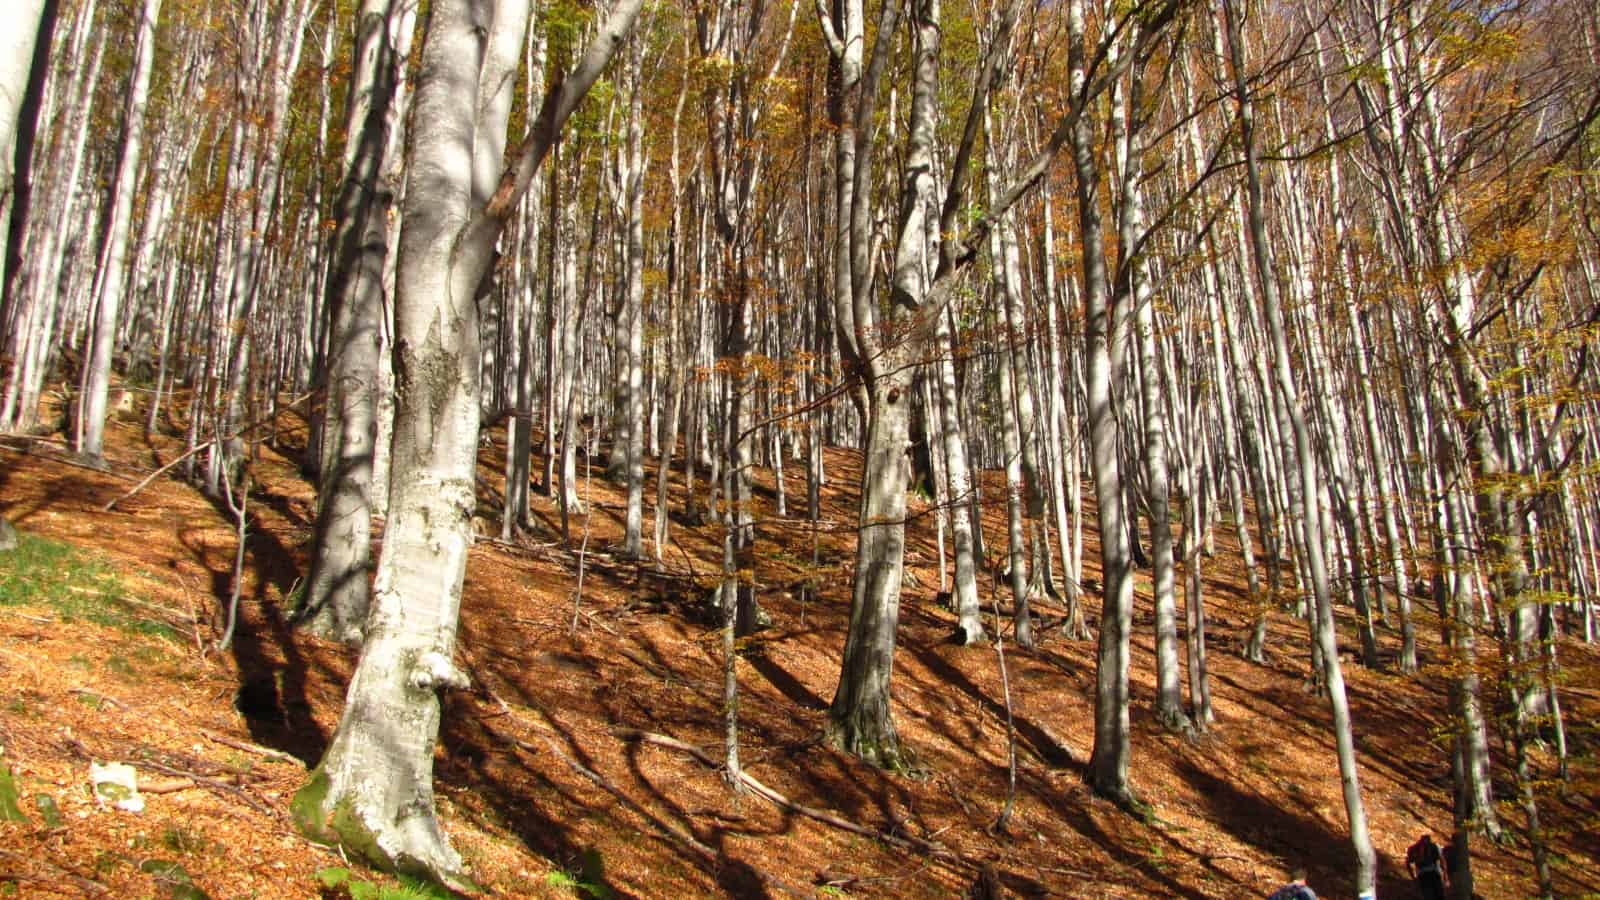 Beech forest in Stara reka reserve - Photo: Central Balkan National Park and Biosphere Reserve